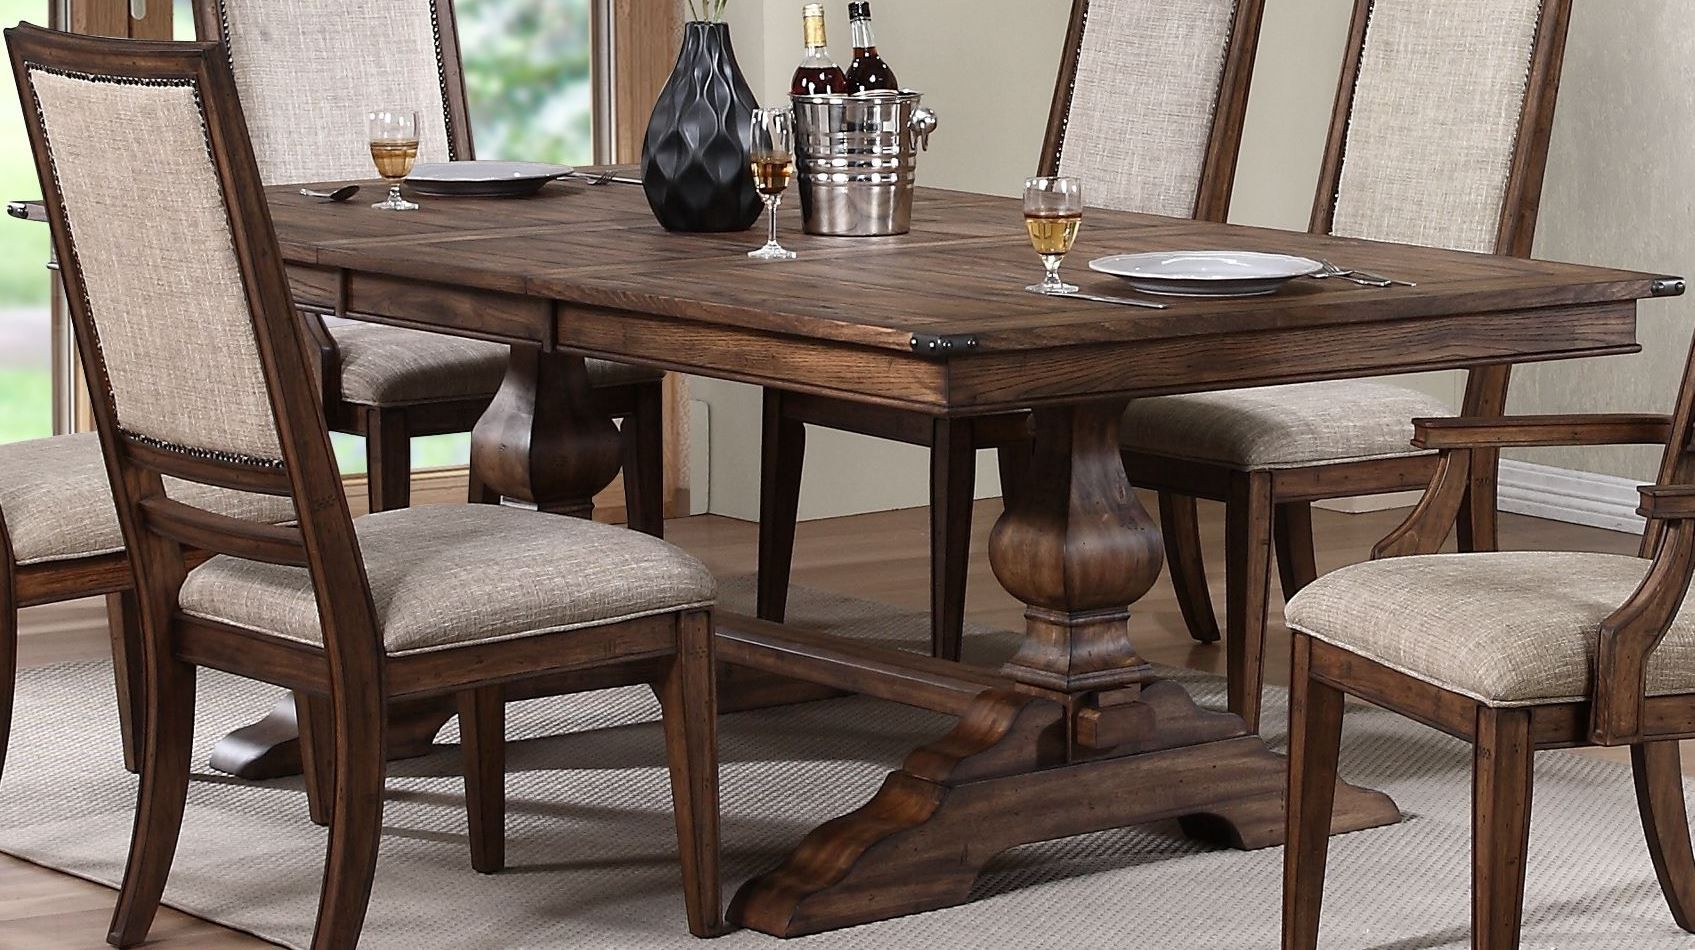 Sutton Manor Distressed Oak Manor Extendable Dining Room Set D1505 10T 10B